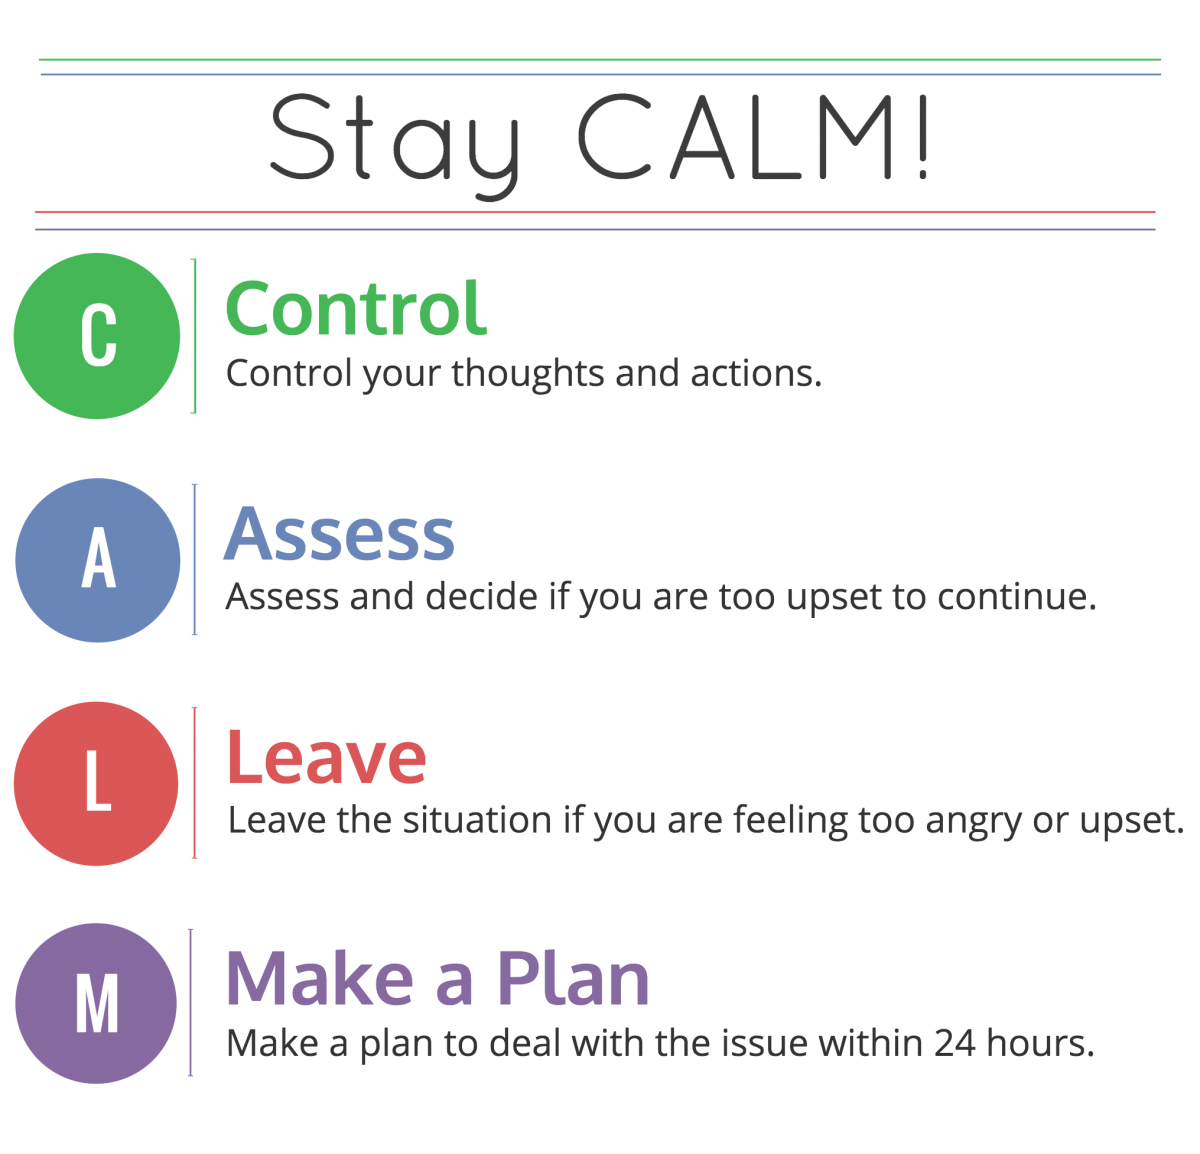 Stay Calm To Aid Communication: Control your thoughts and actions. Assess and decide if you are too upset to continue. Leave the situation if you are feeling too angry or upset. Make a plan to deal with the situation within 24 hours.